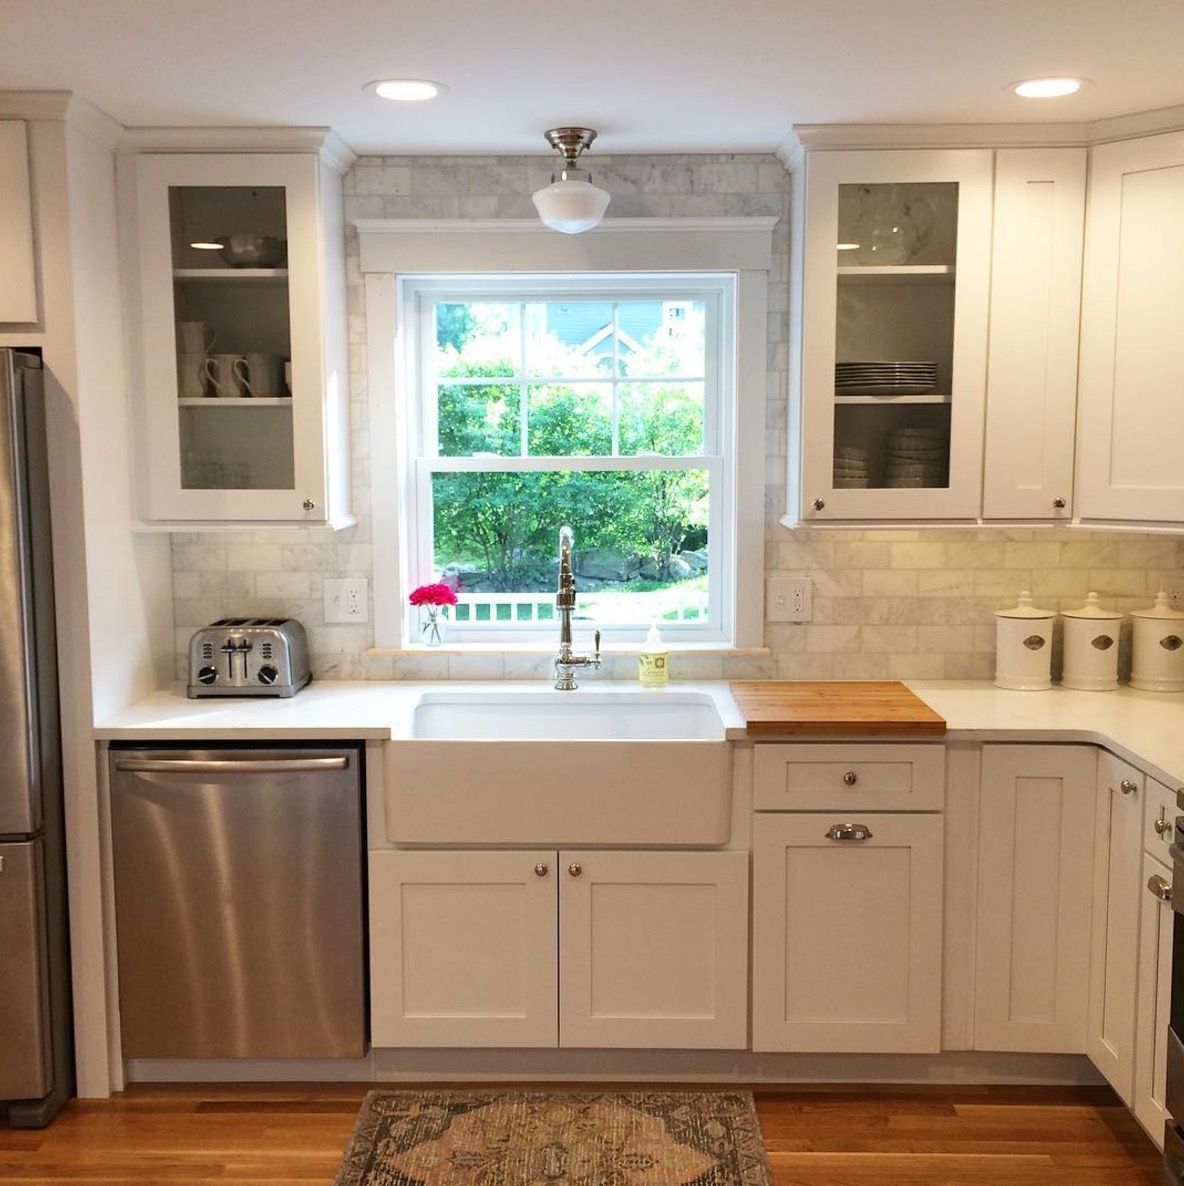 A gorgeous kitchen featuring a Kohler Artifacts faucet and Blanco ...